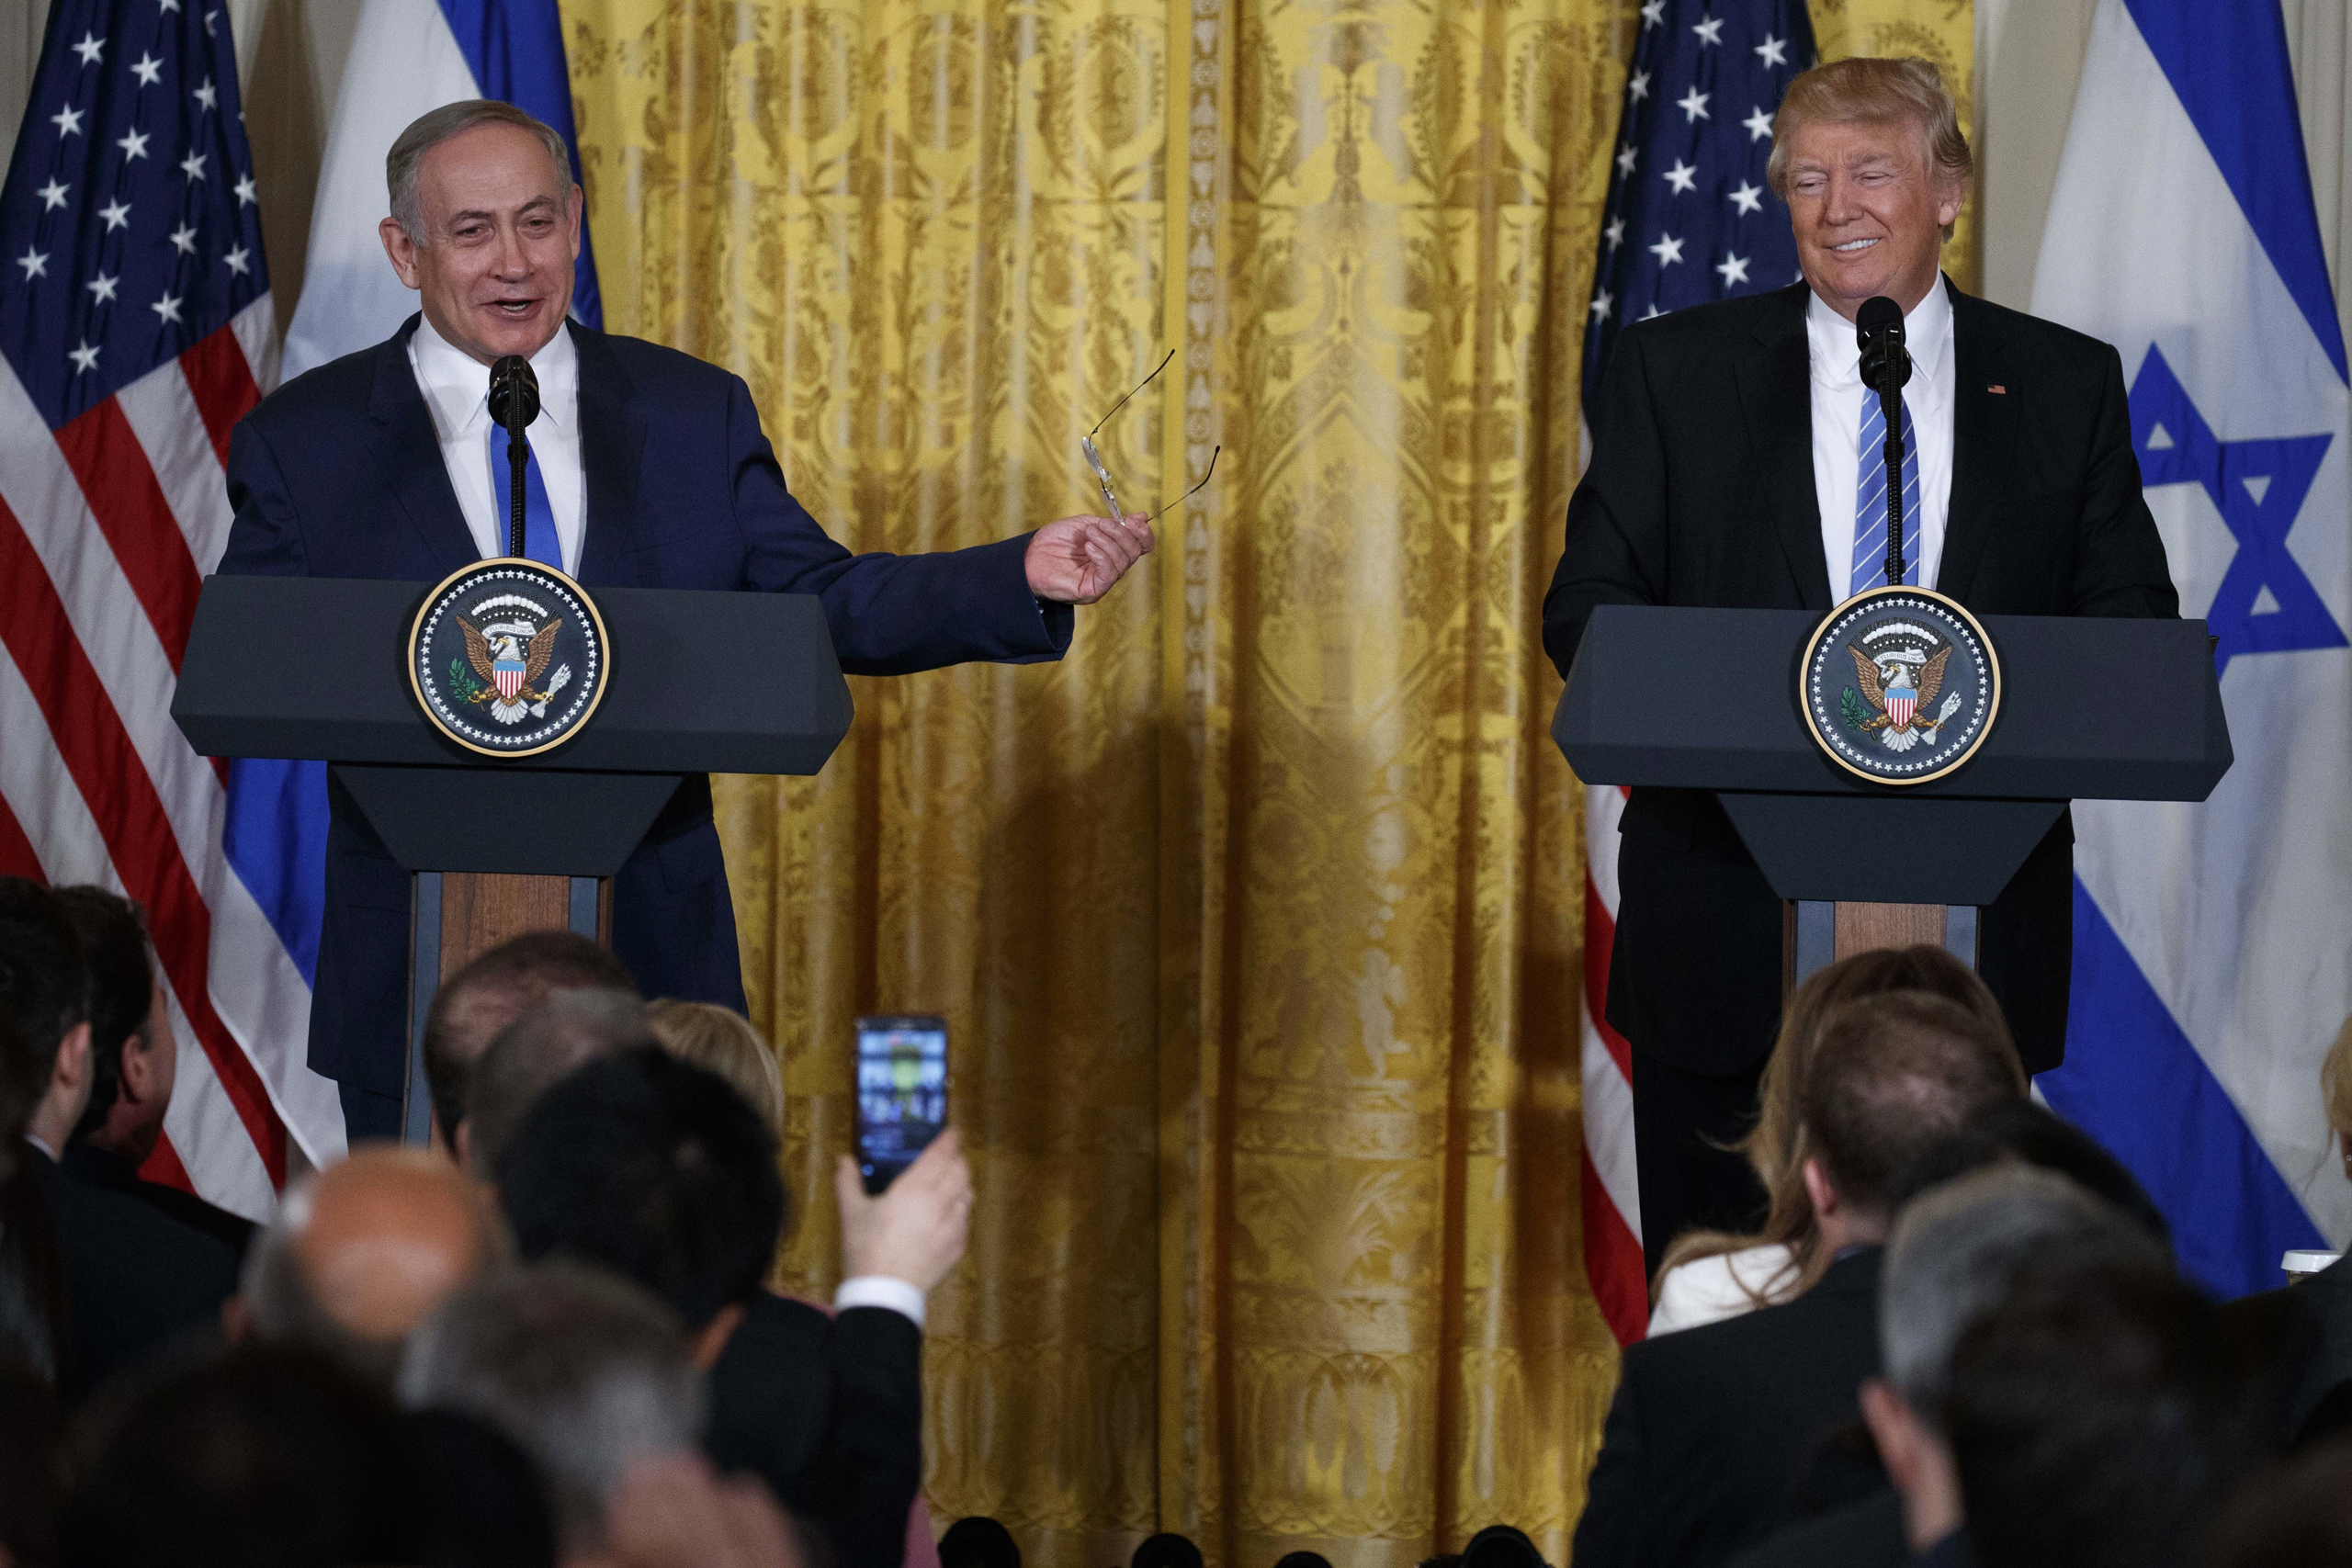 President Donald Trump listens as Israeli Prime Minister Benjamin Netanyahu speaks during their joint news conference in the East Room of the White House, on Feb. 15, 2017.